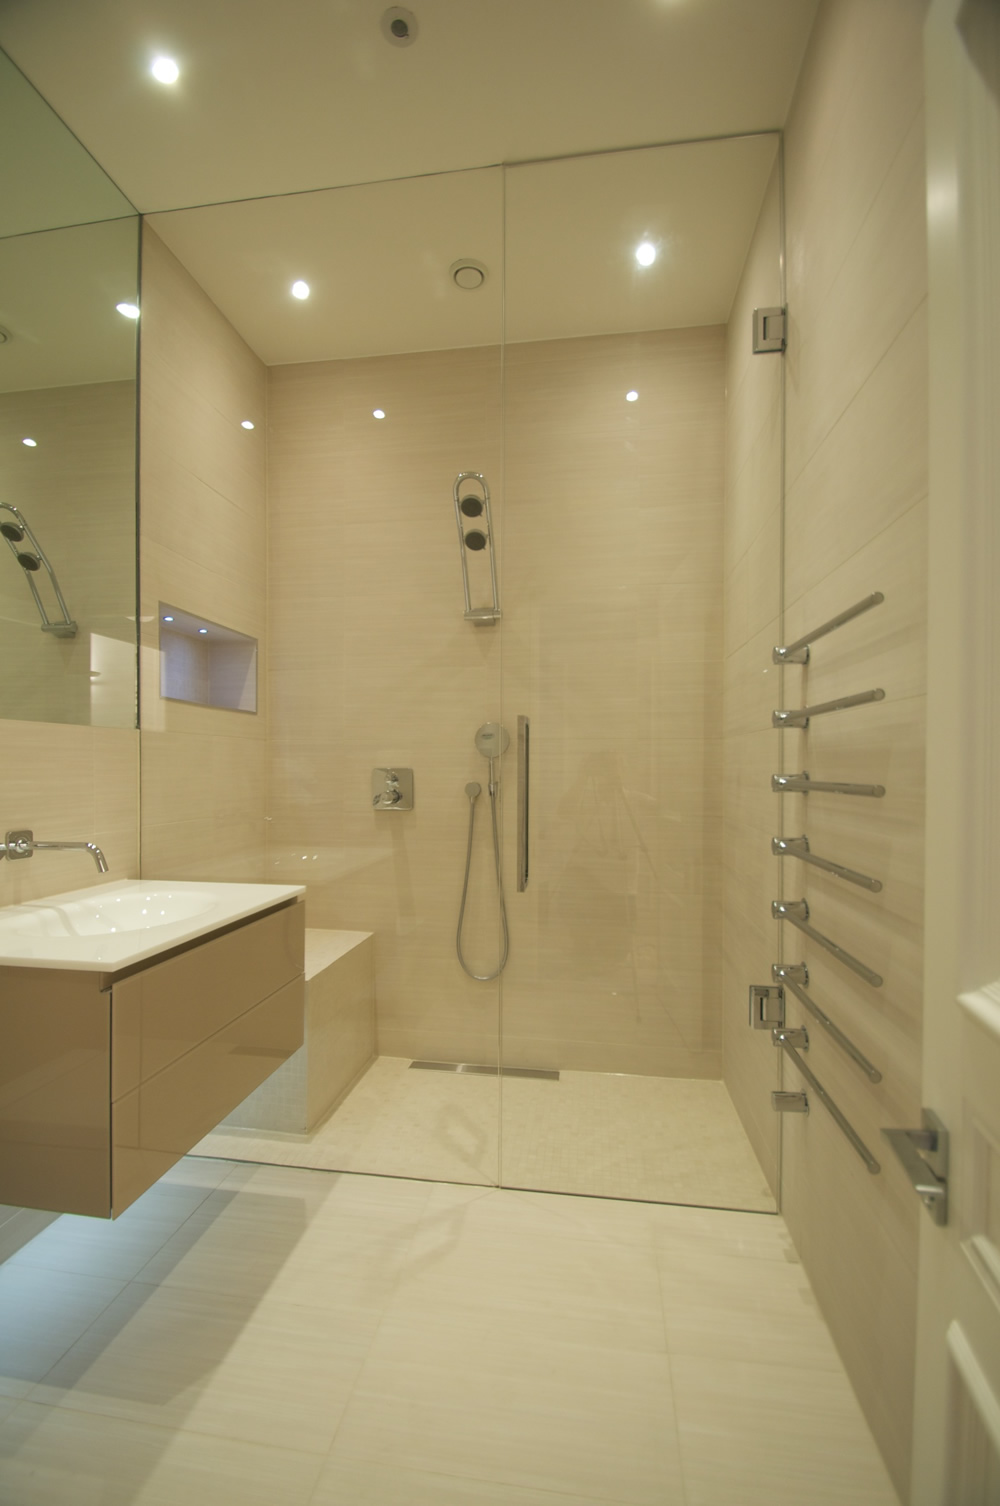 Wet rooms design gallery ccl wetrooms for Wet room design ideas pictures